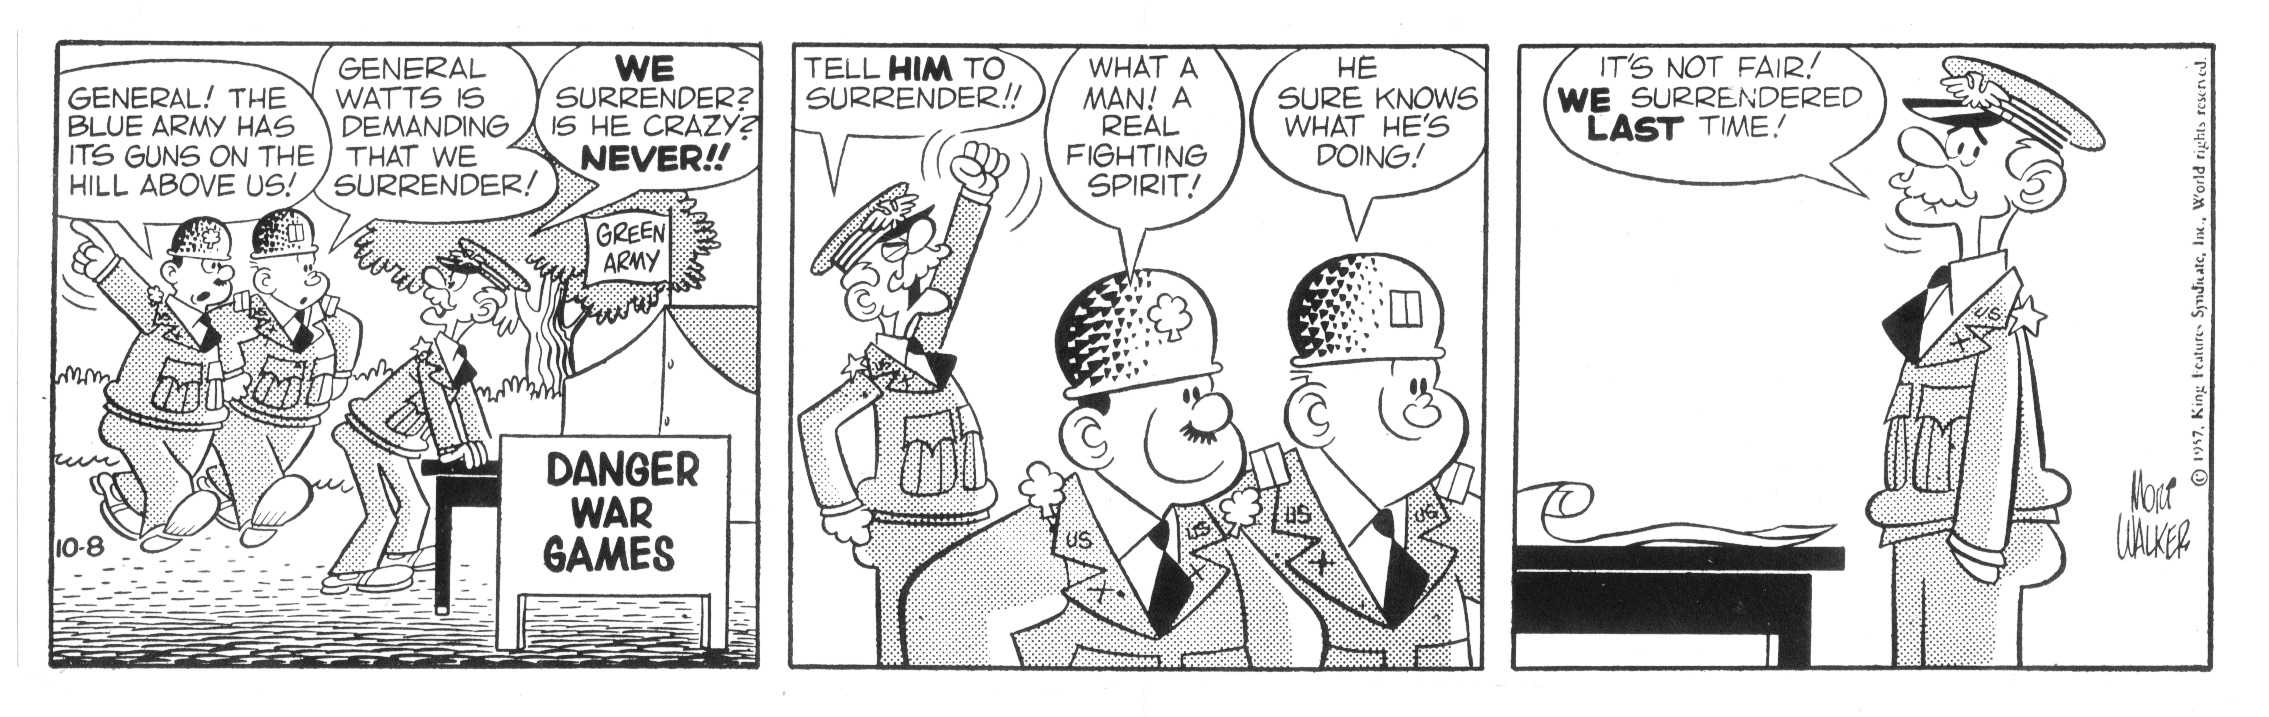 Beetle Bailey daily strip, October 8, 1957.